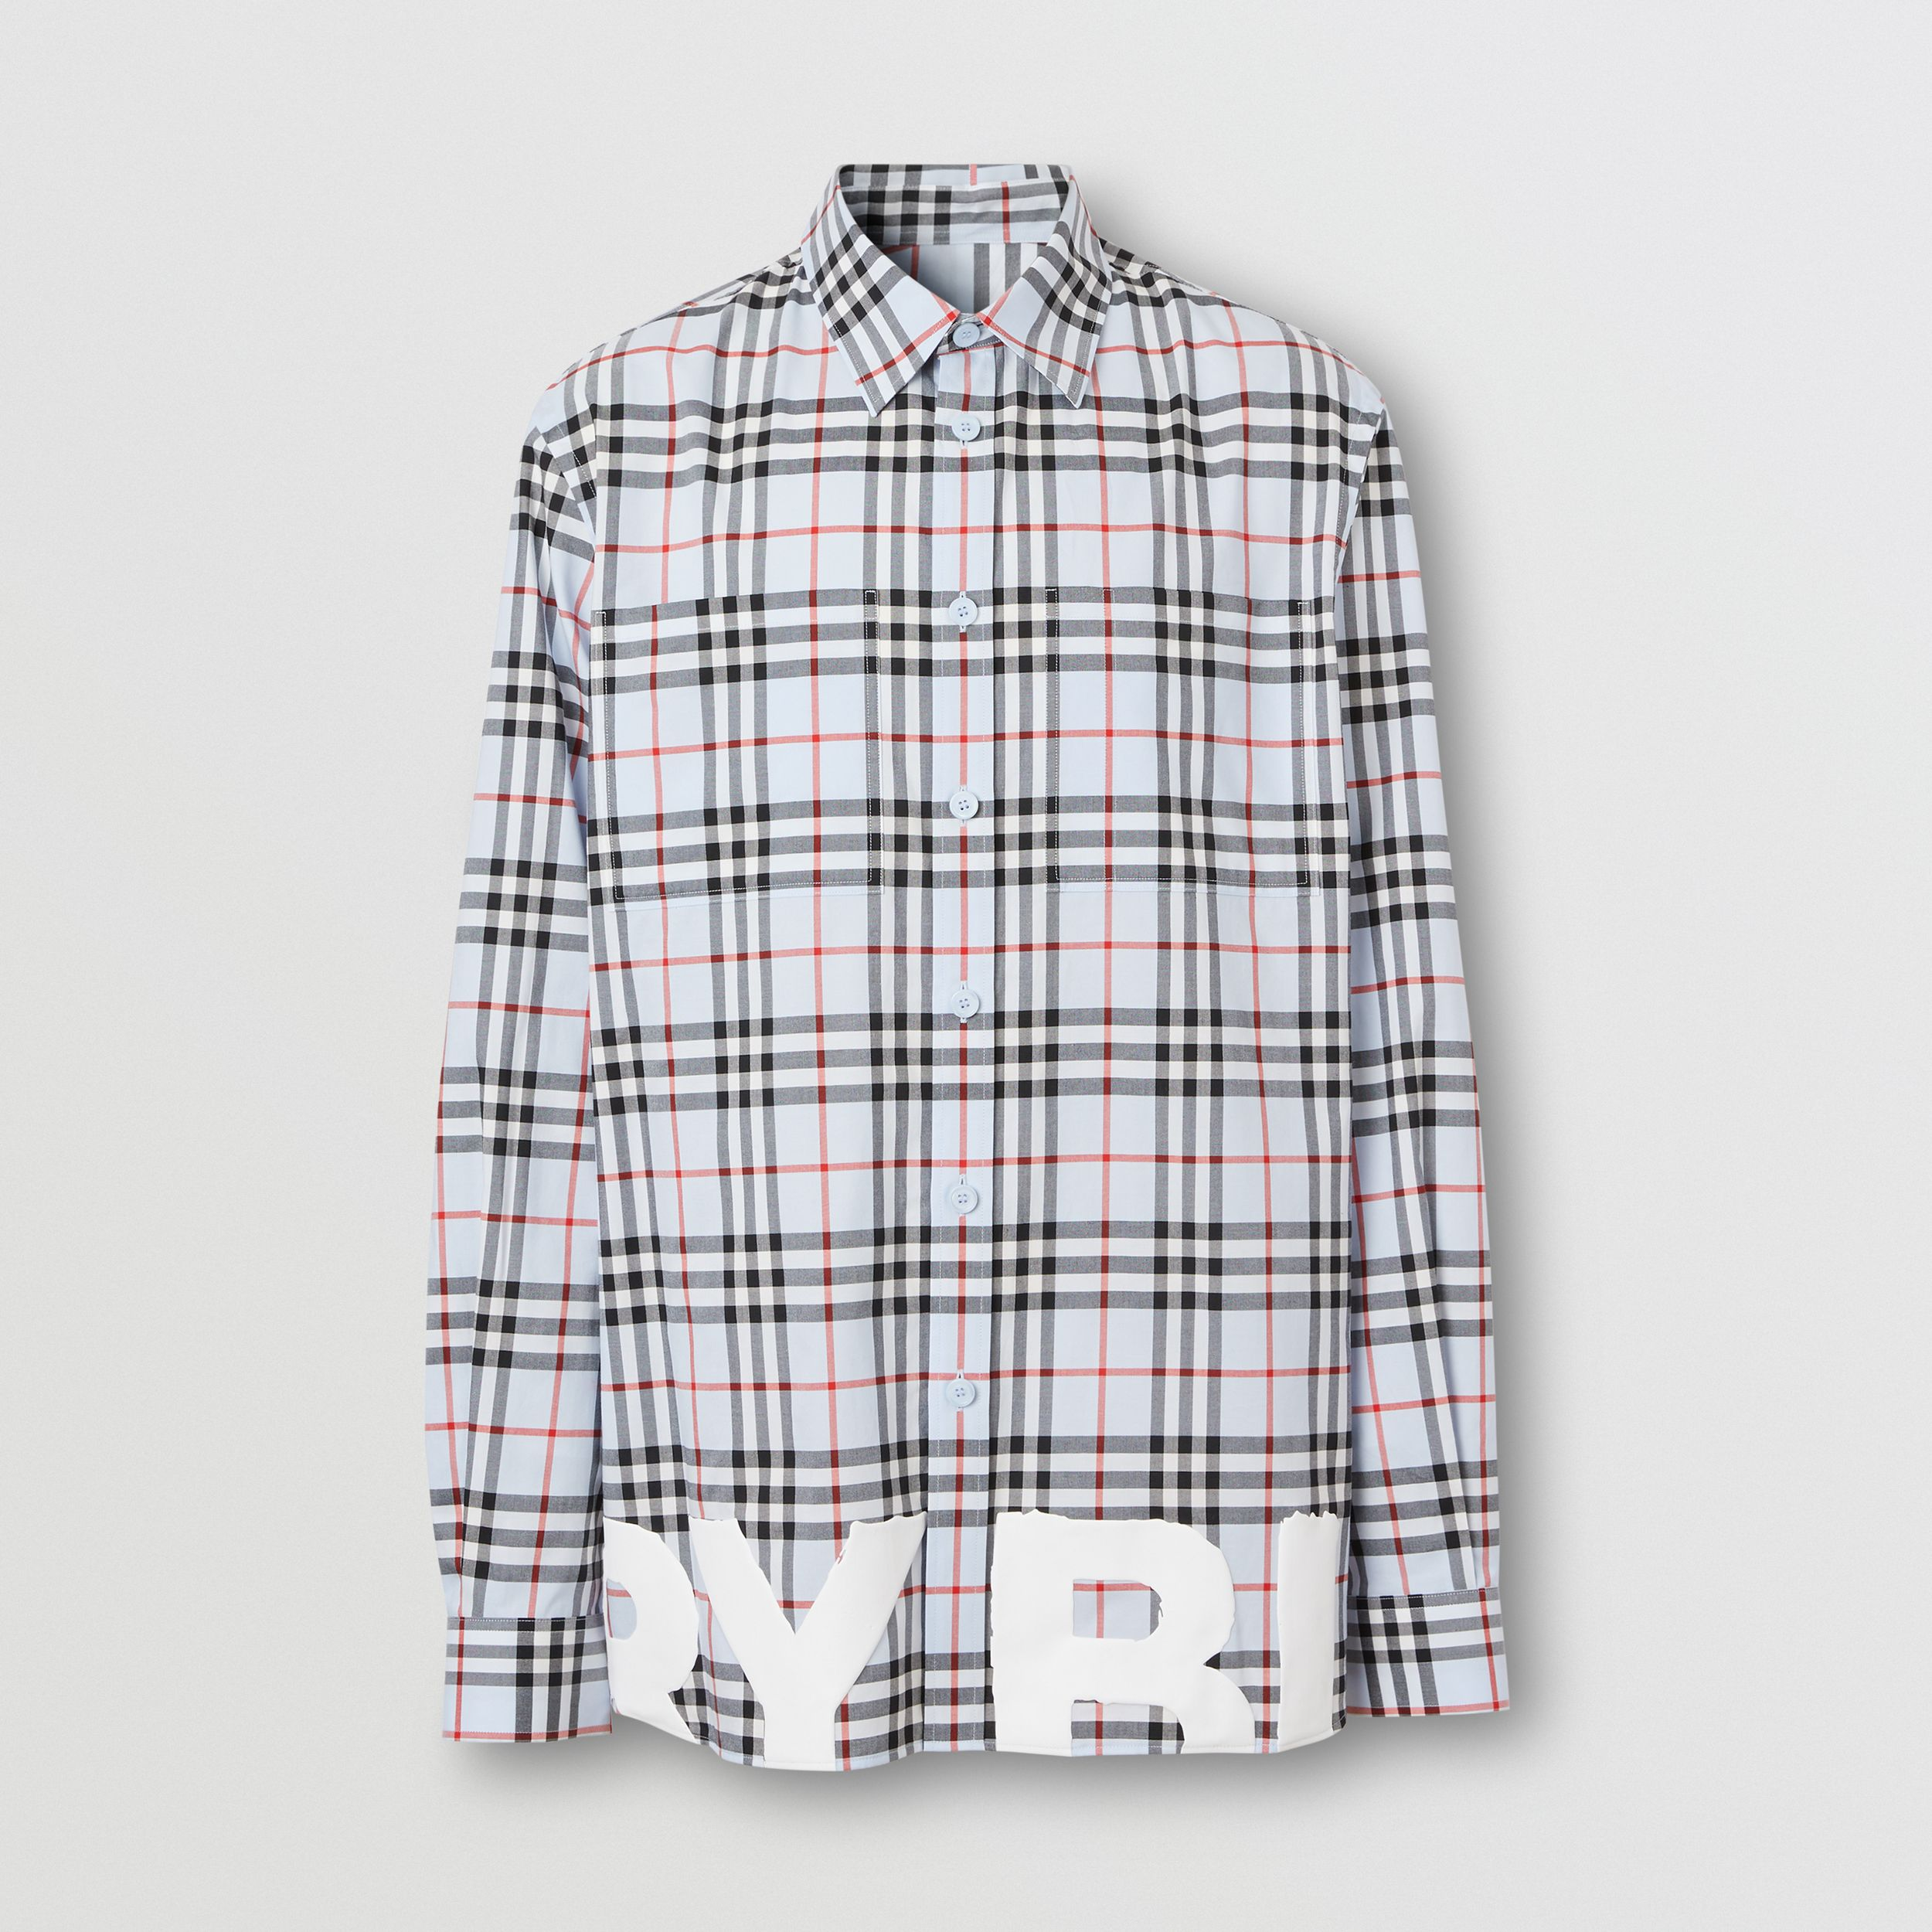 Logo Print Vintage Check Cotton Oversized Shirt – Online Exclusive in Pale Blue - Men | Burberry - 4